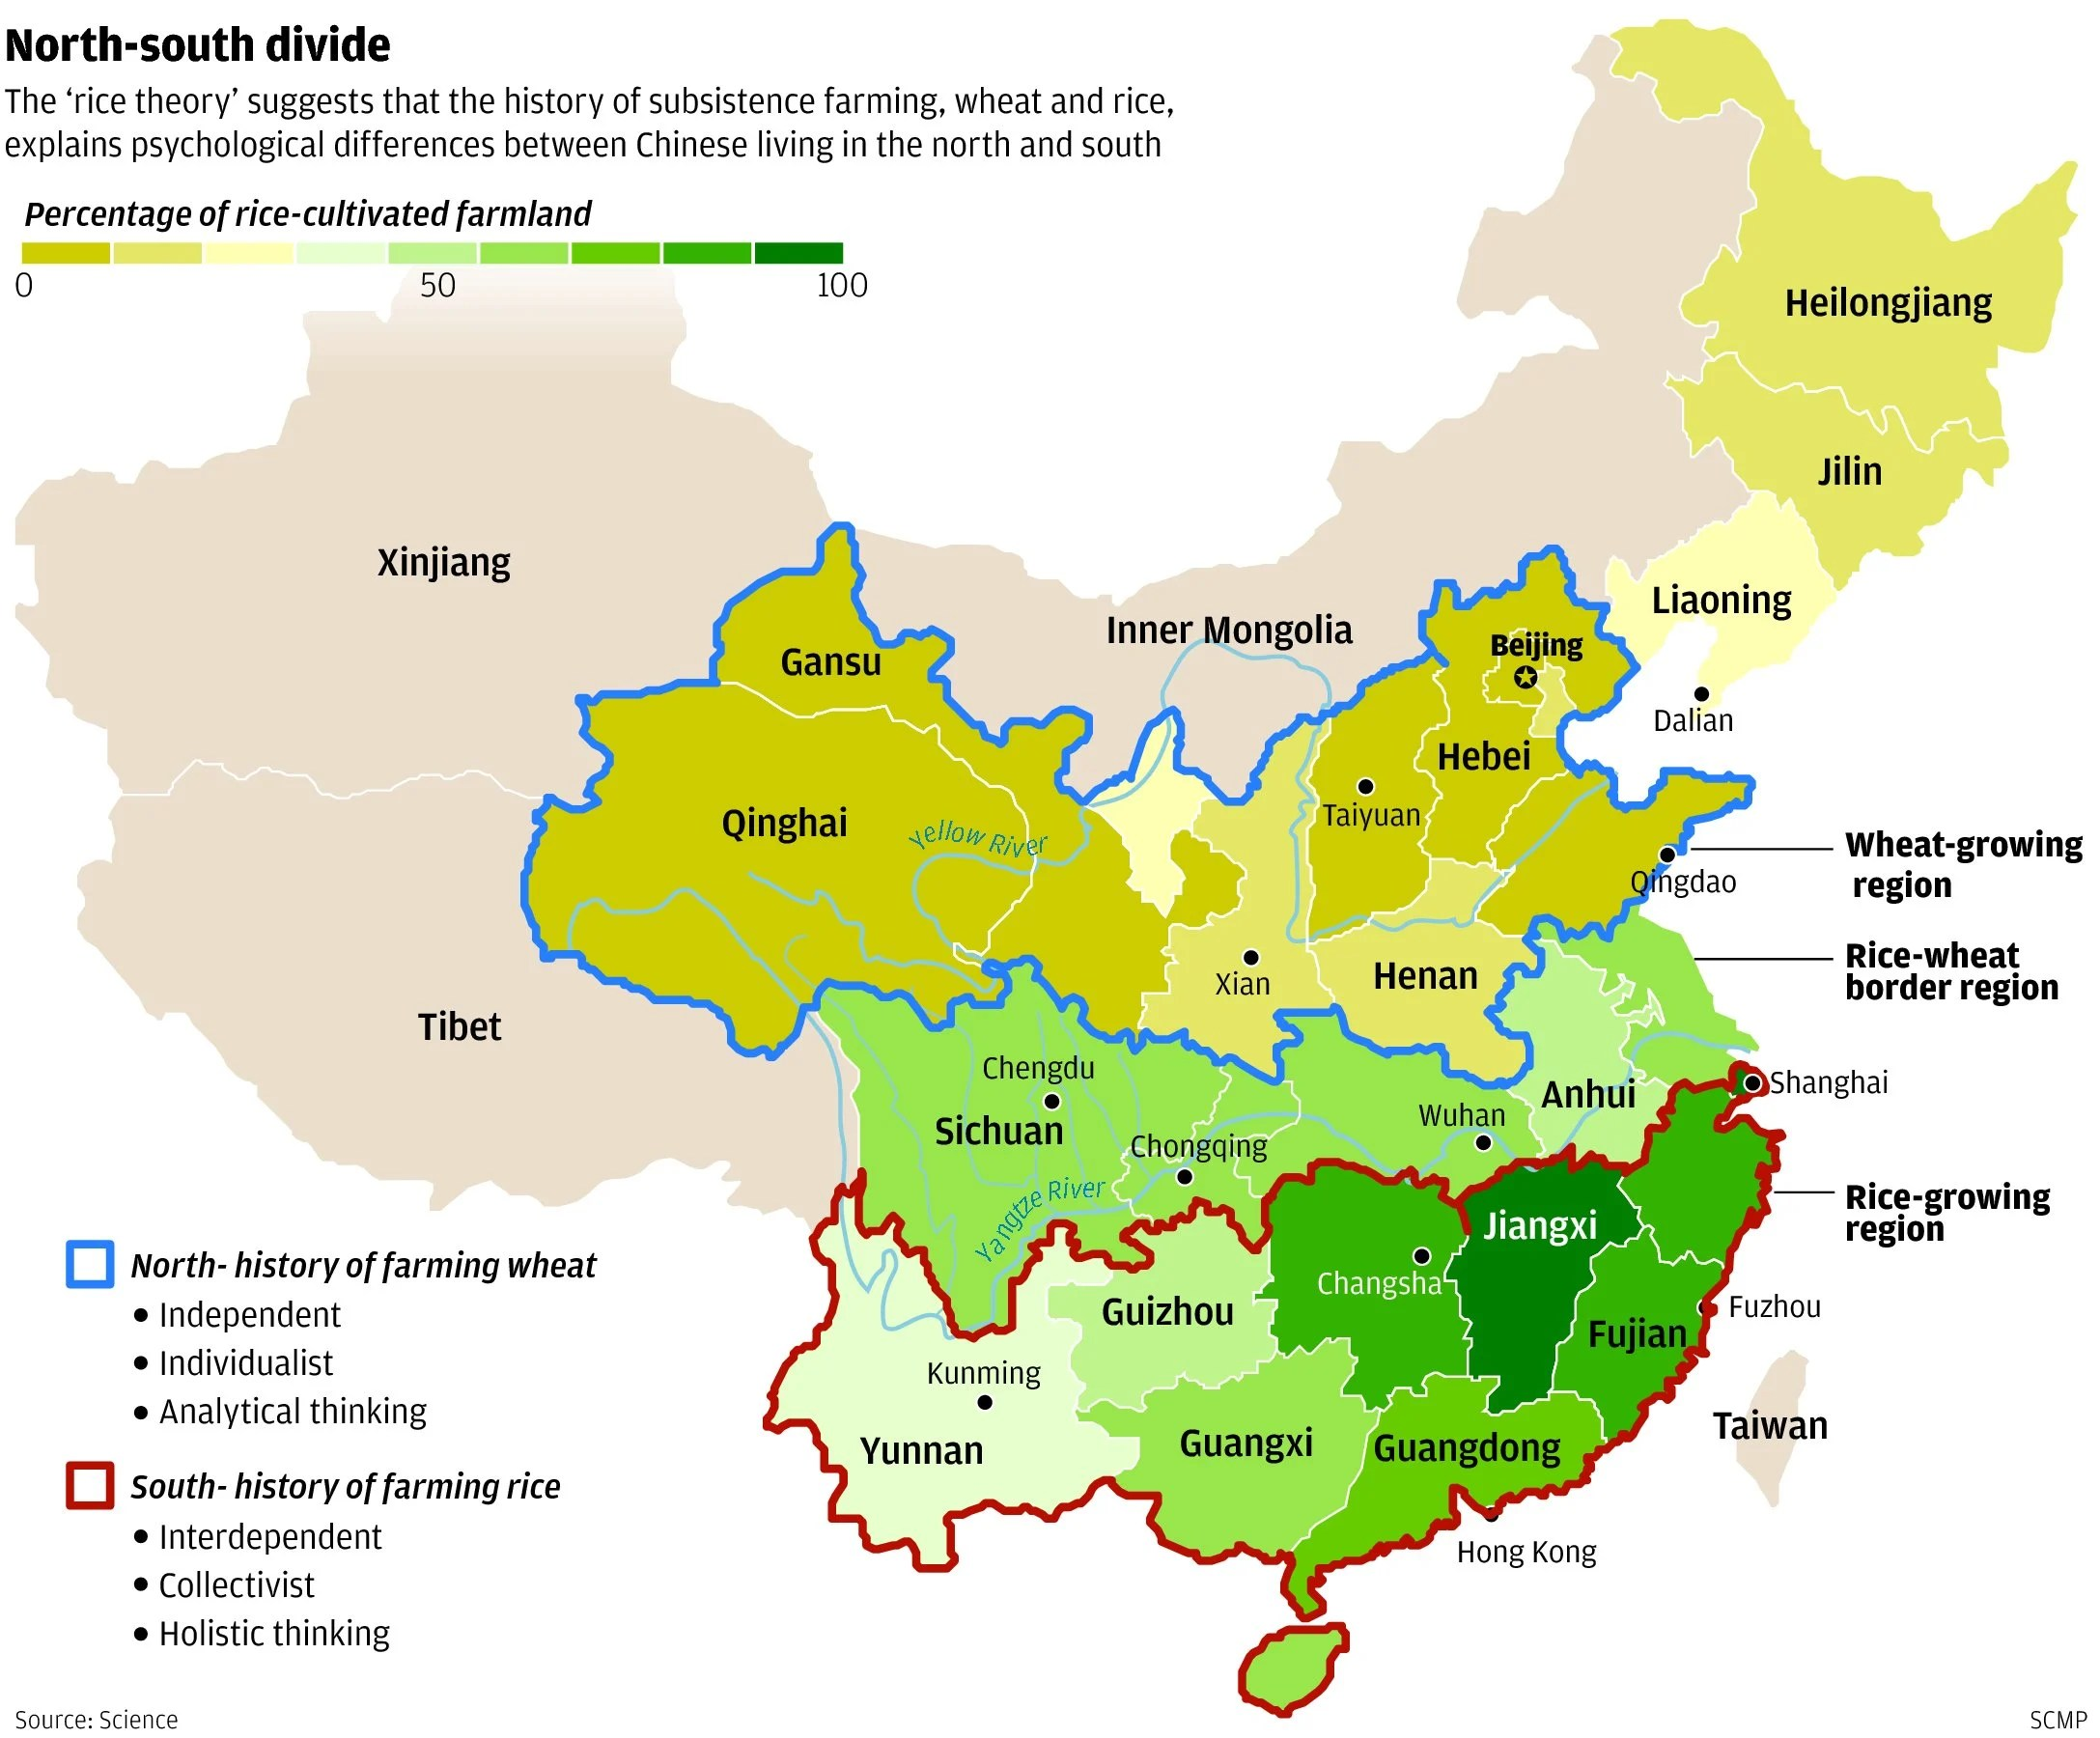 Rice Vs Wheat Production In China Has Been Hypothesised To